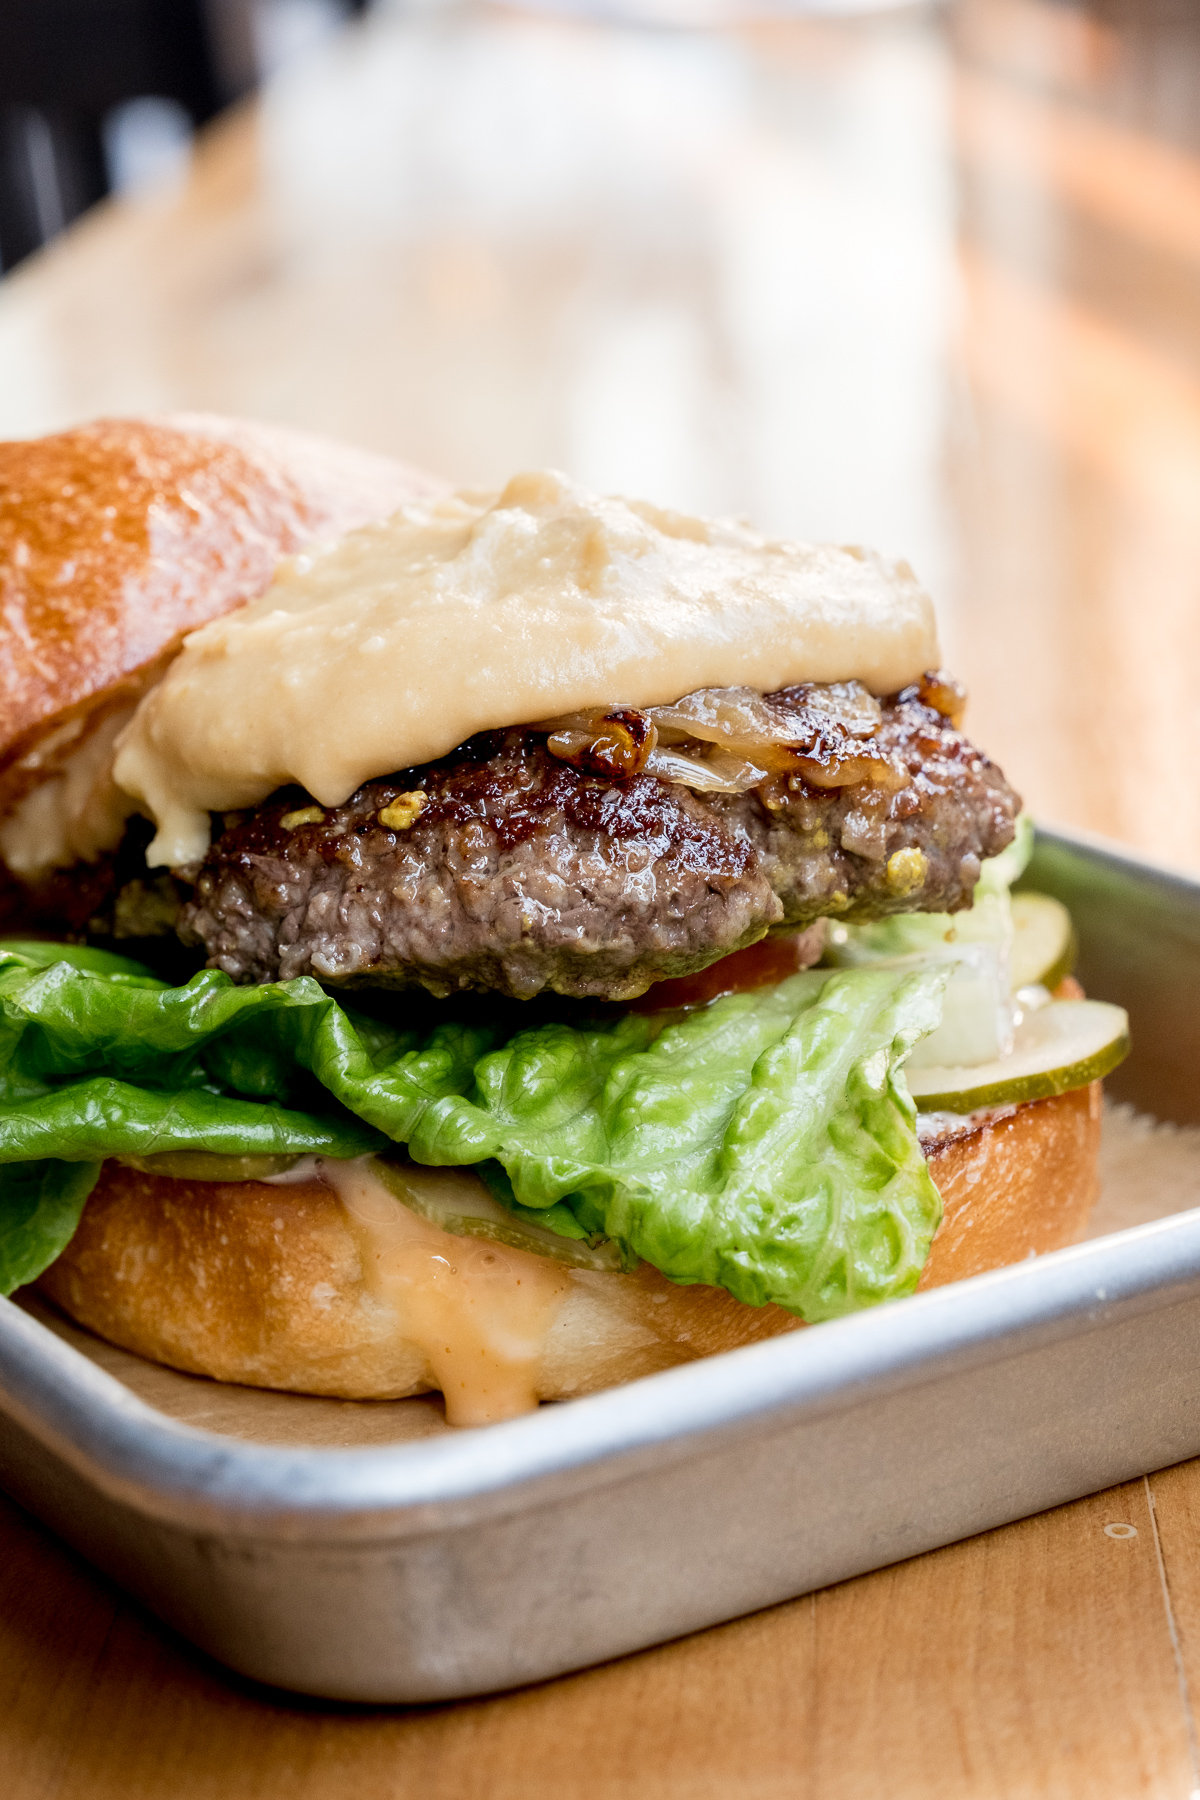 Grass-fed beef cheeseburger with caramelized onions and house-made beer cheese / Image: Daniel Smyth Photography